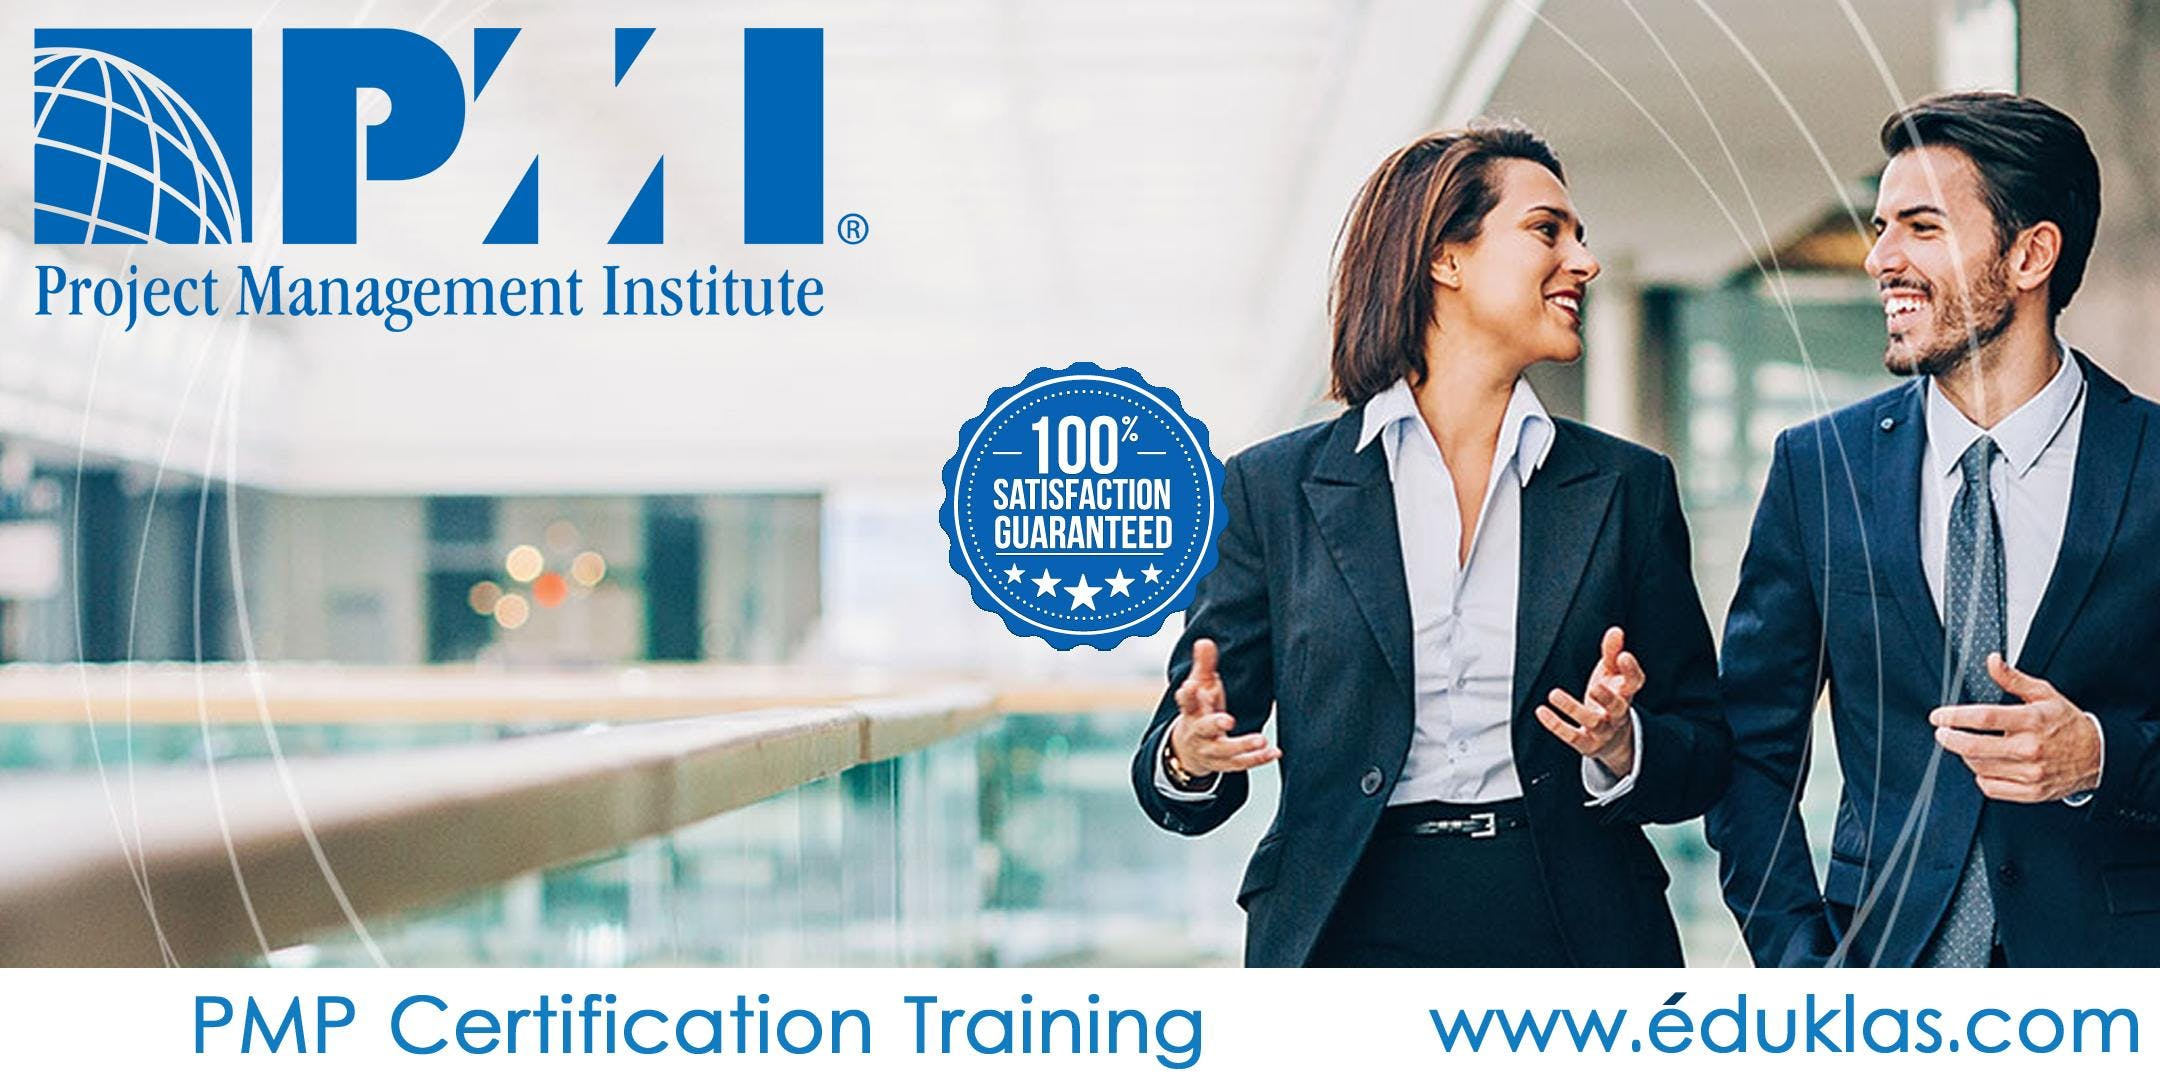 Pmi pmp certification training course in sunnyvalecaeduklas at pmi pmp certification training course in sunnyvalecaeduklas 1betcityfo Image collections